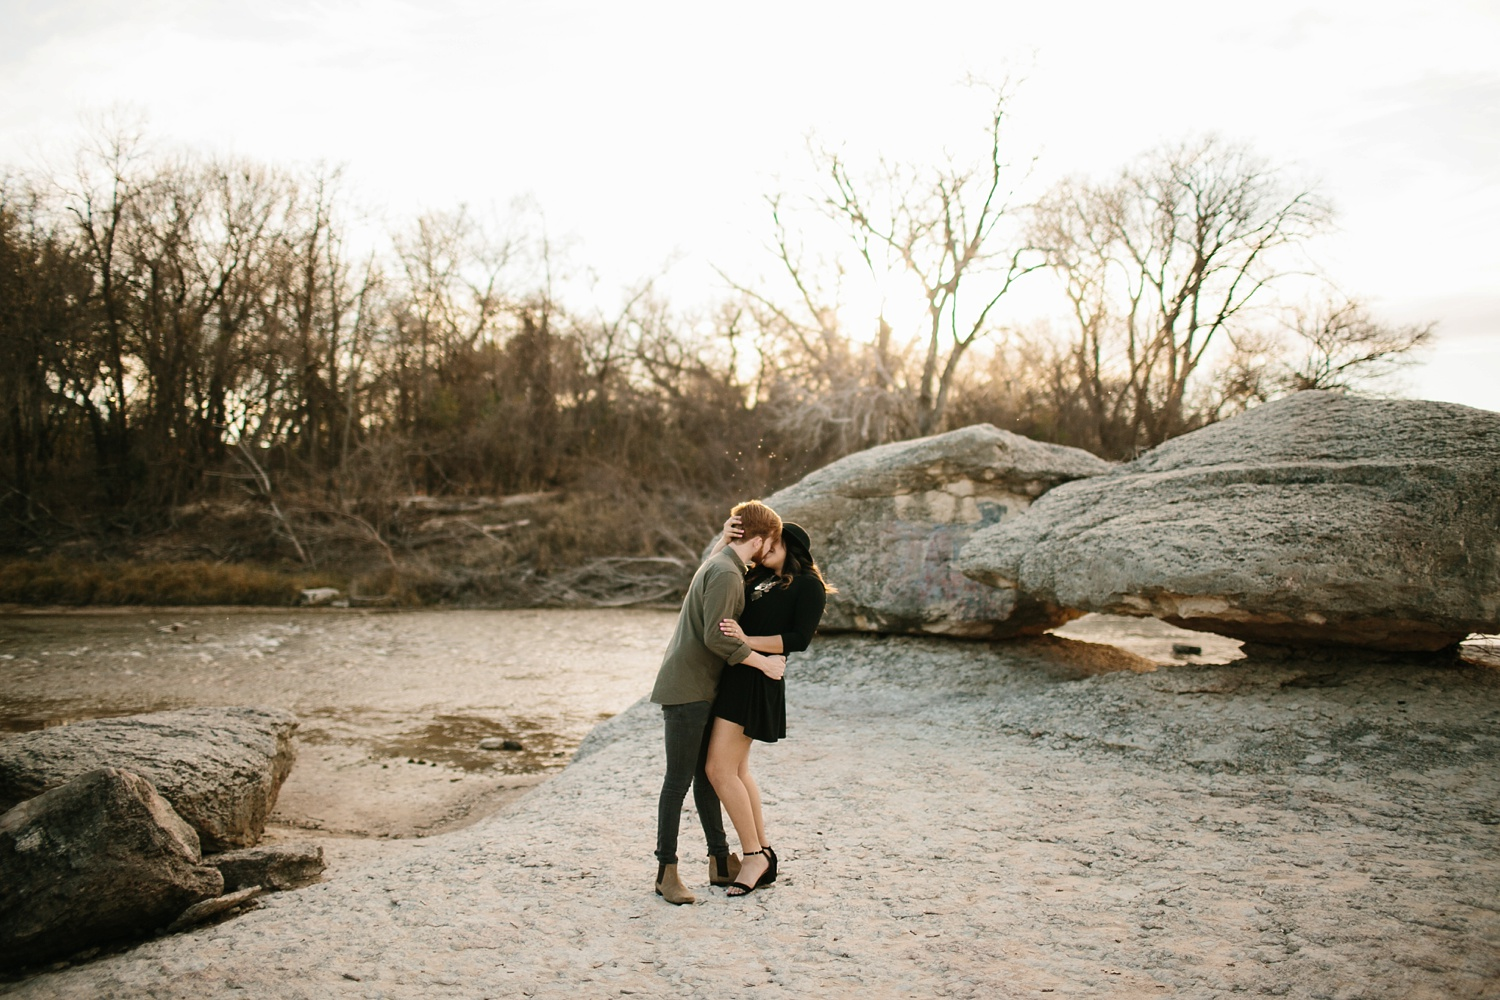 Grant + Lysette - floral dress engagement session by North Texas Wedding Photographer Rachel Meagan Photography052